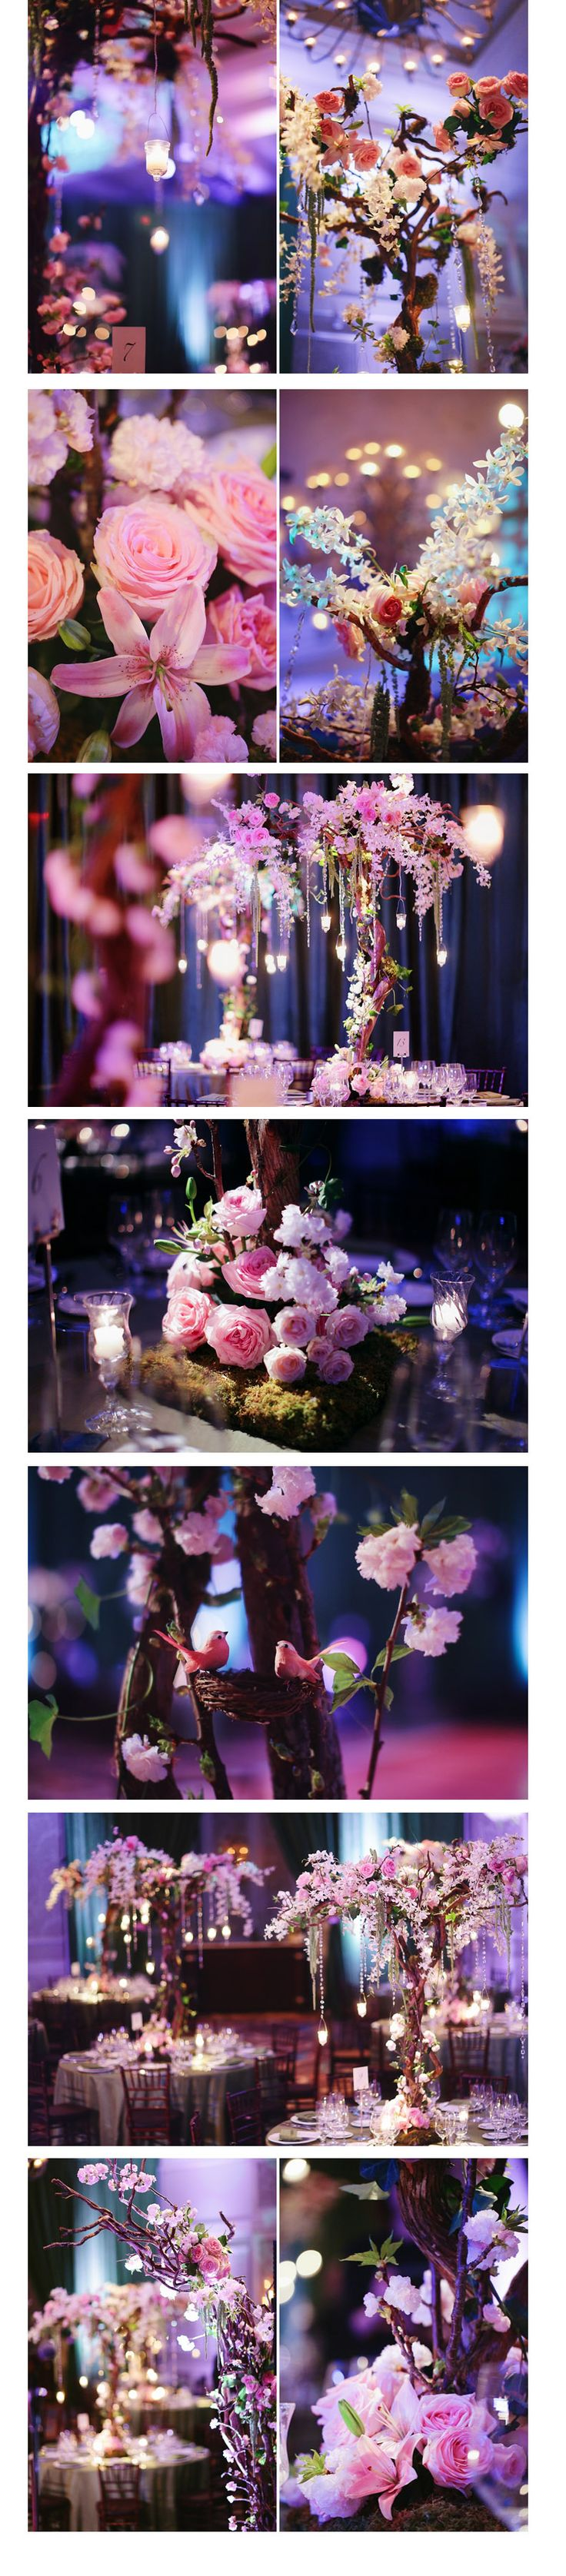 Centerpieces: Higher centerpieces, 8 of them. Diy: Table Candles/Votives. Need from Florist: Natural woo branches/manzanita, floral arrangements with greens, crystal hangings with candle holders. Request a break down of price for each item.